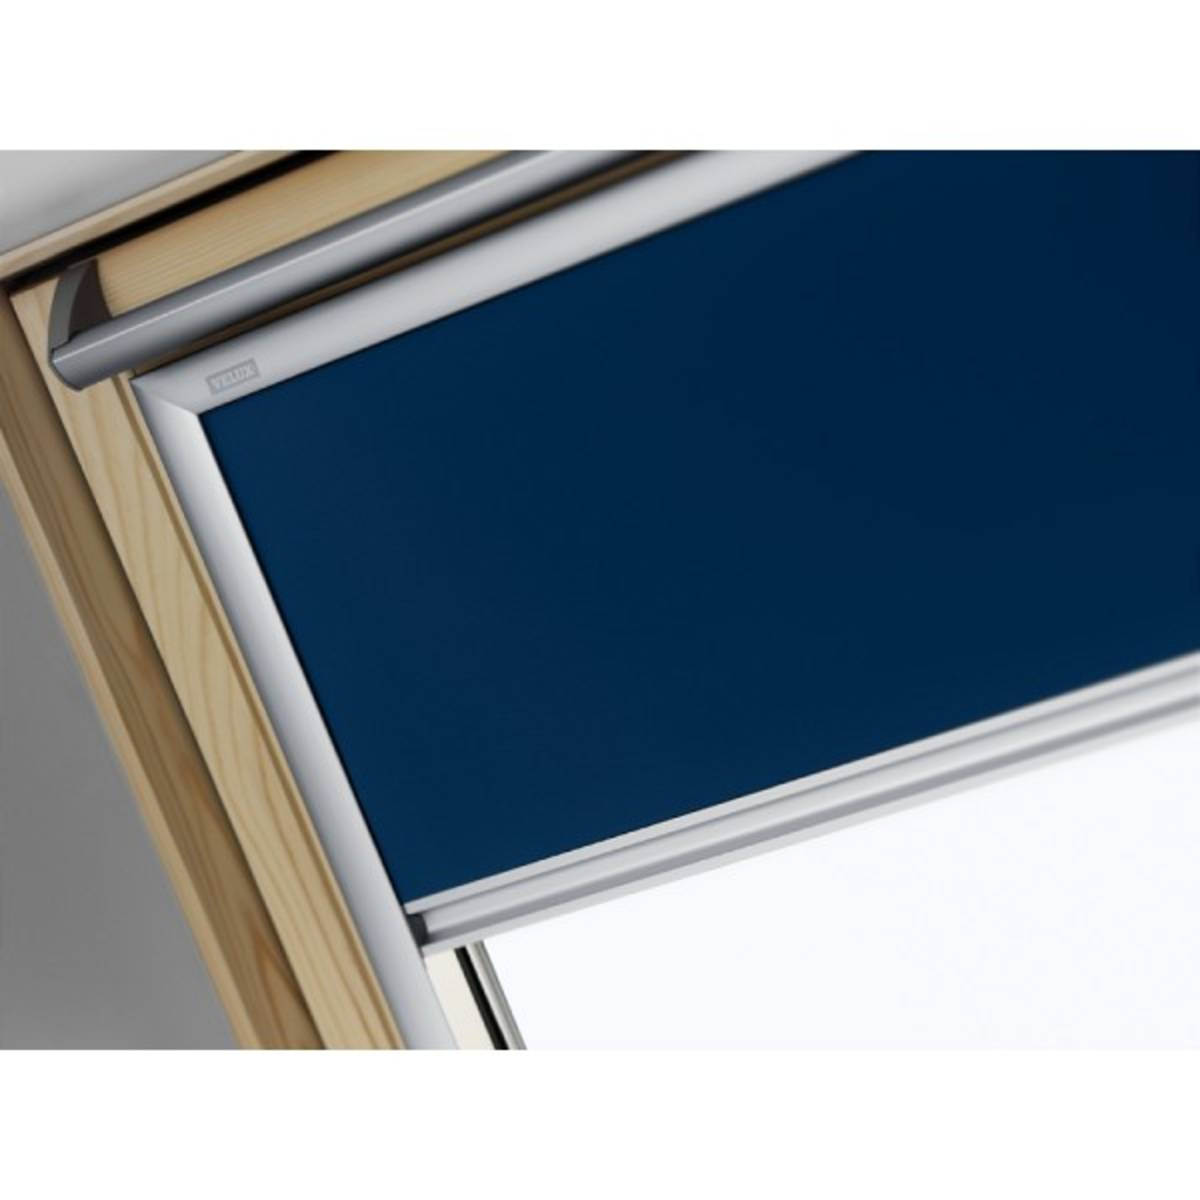 Store occultant velux ggl m04 for Dimension velux gfl 1